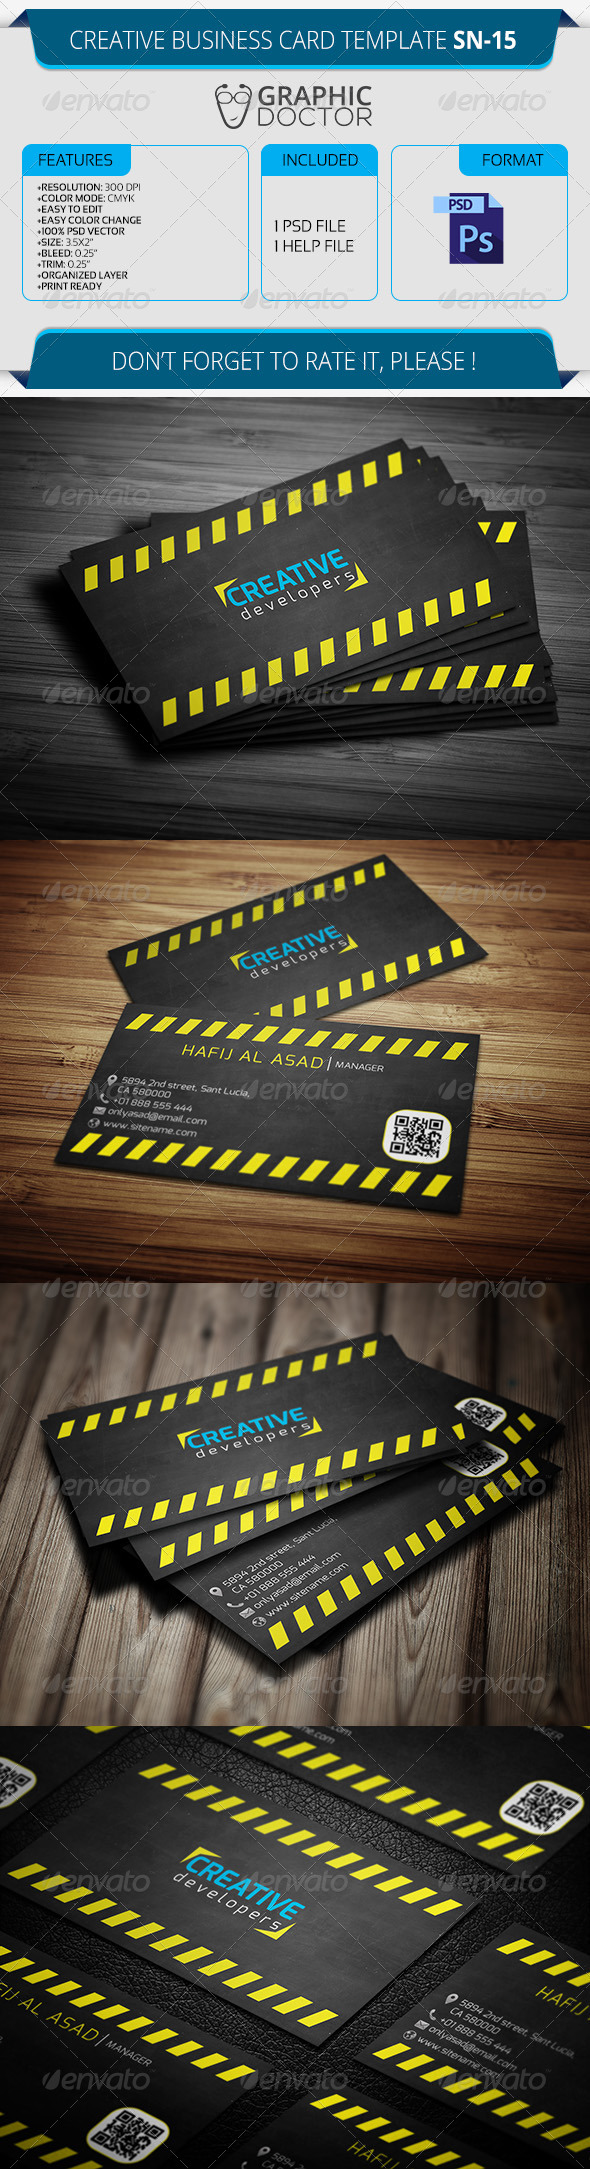 Creative Business Card Template SN-15 - Creative Business Cards